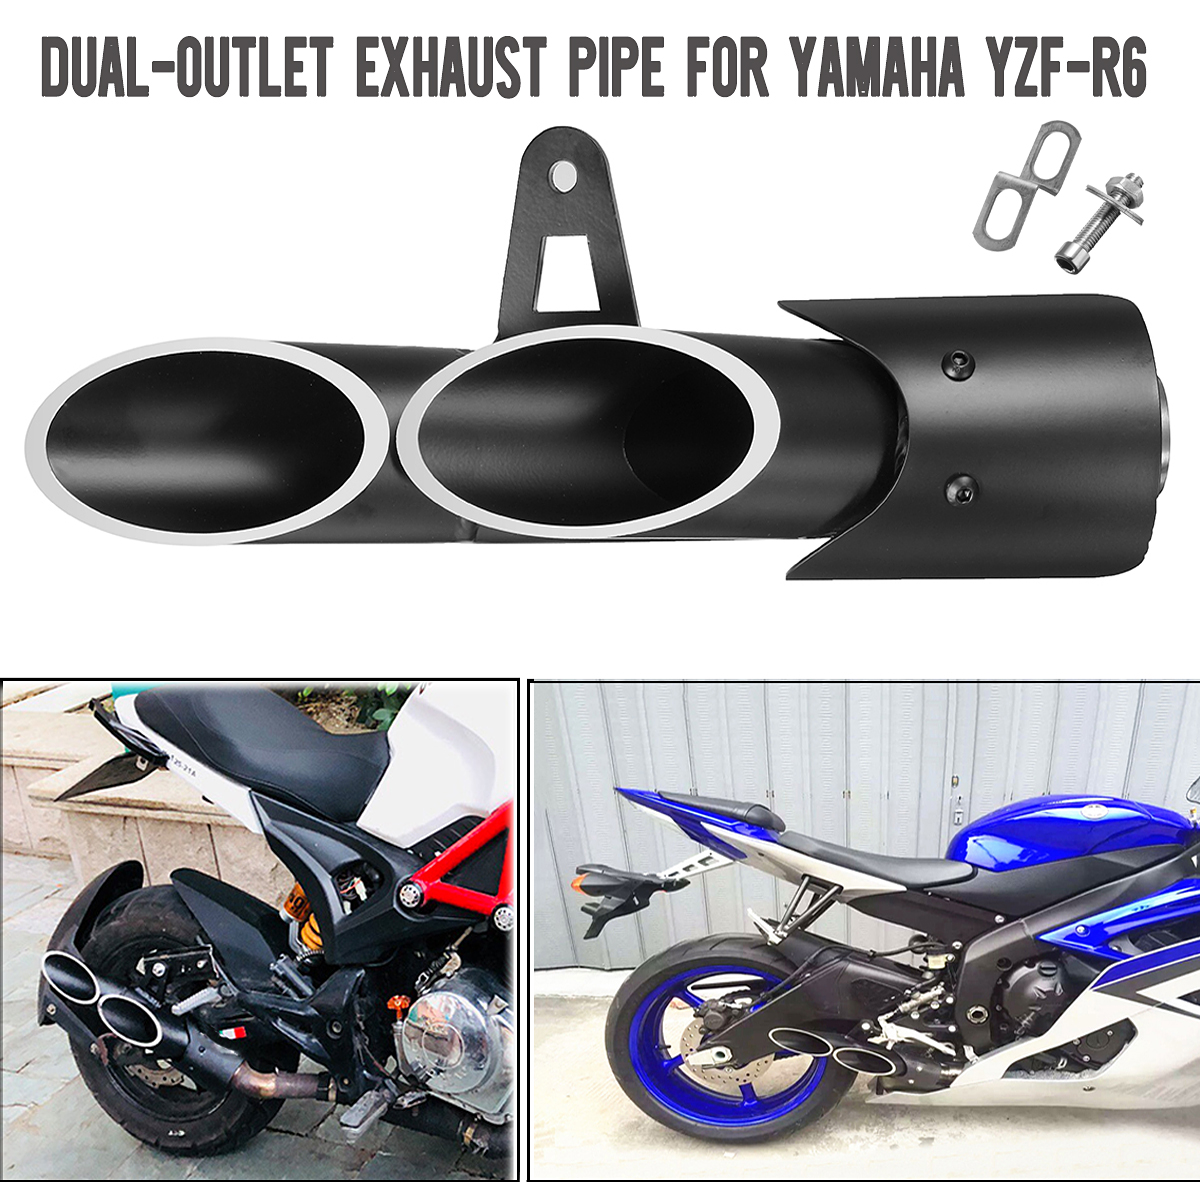 Motorcycle Three-outlet Exhaust Tail Pipe Muffler For Yamaha YZF-R6 Suzuki GSX-R